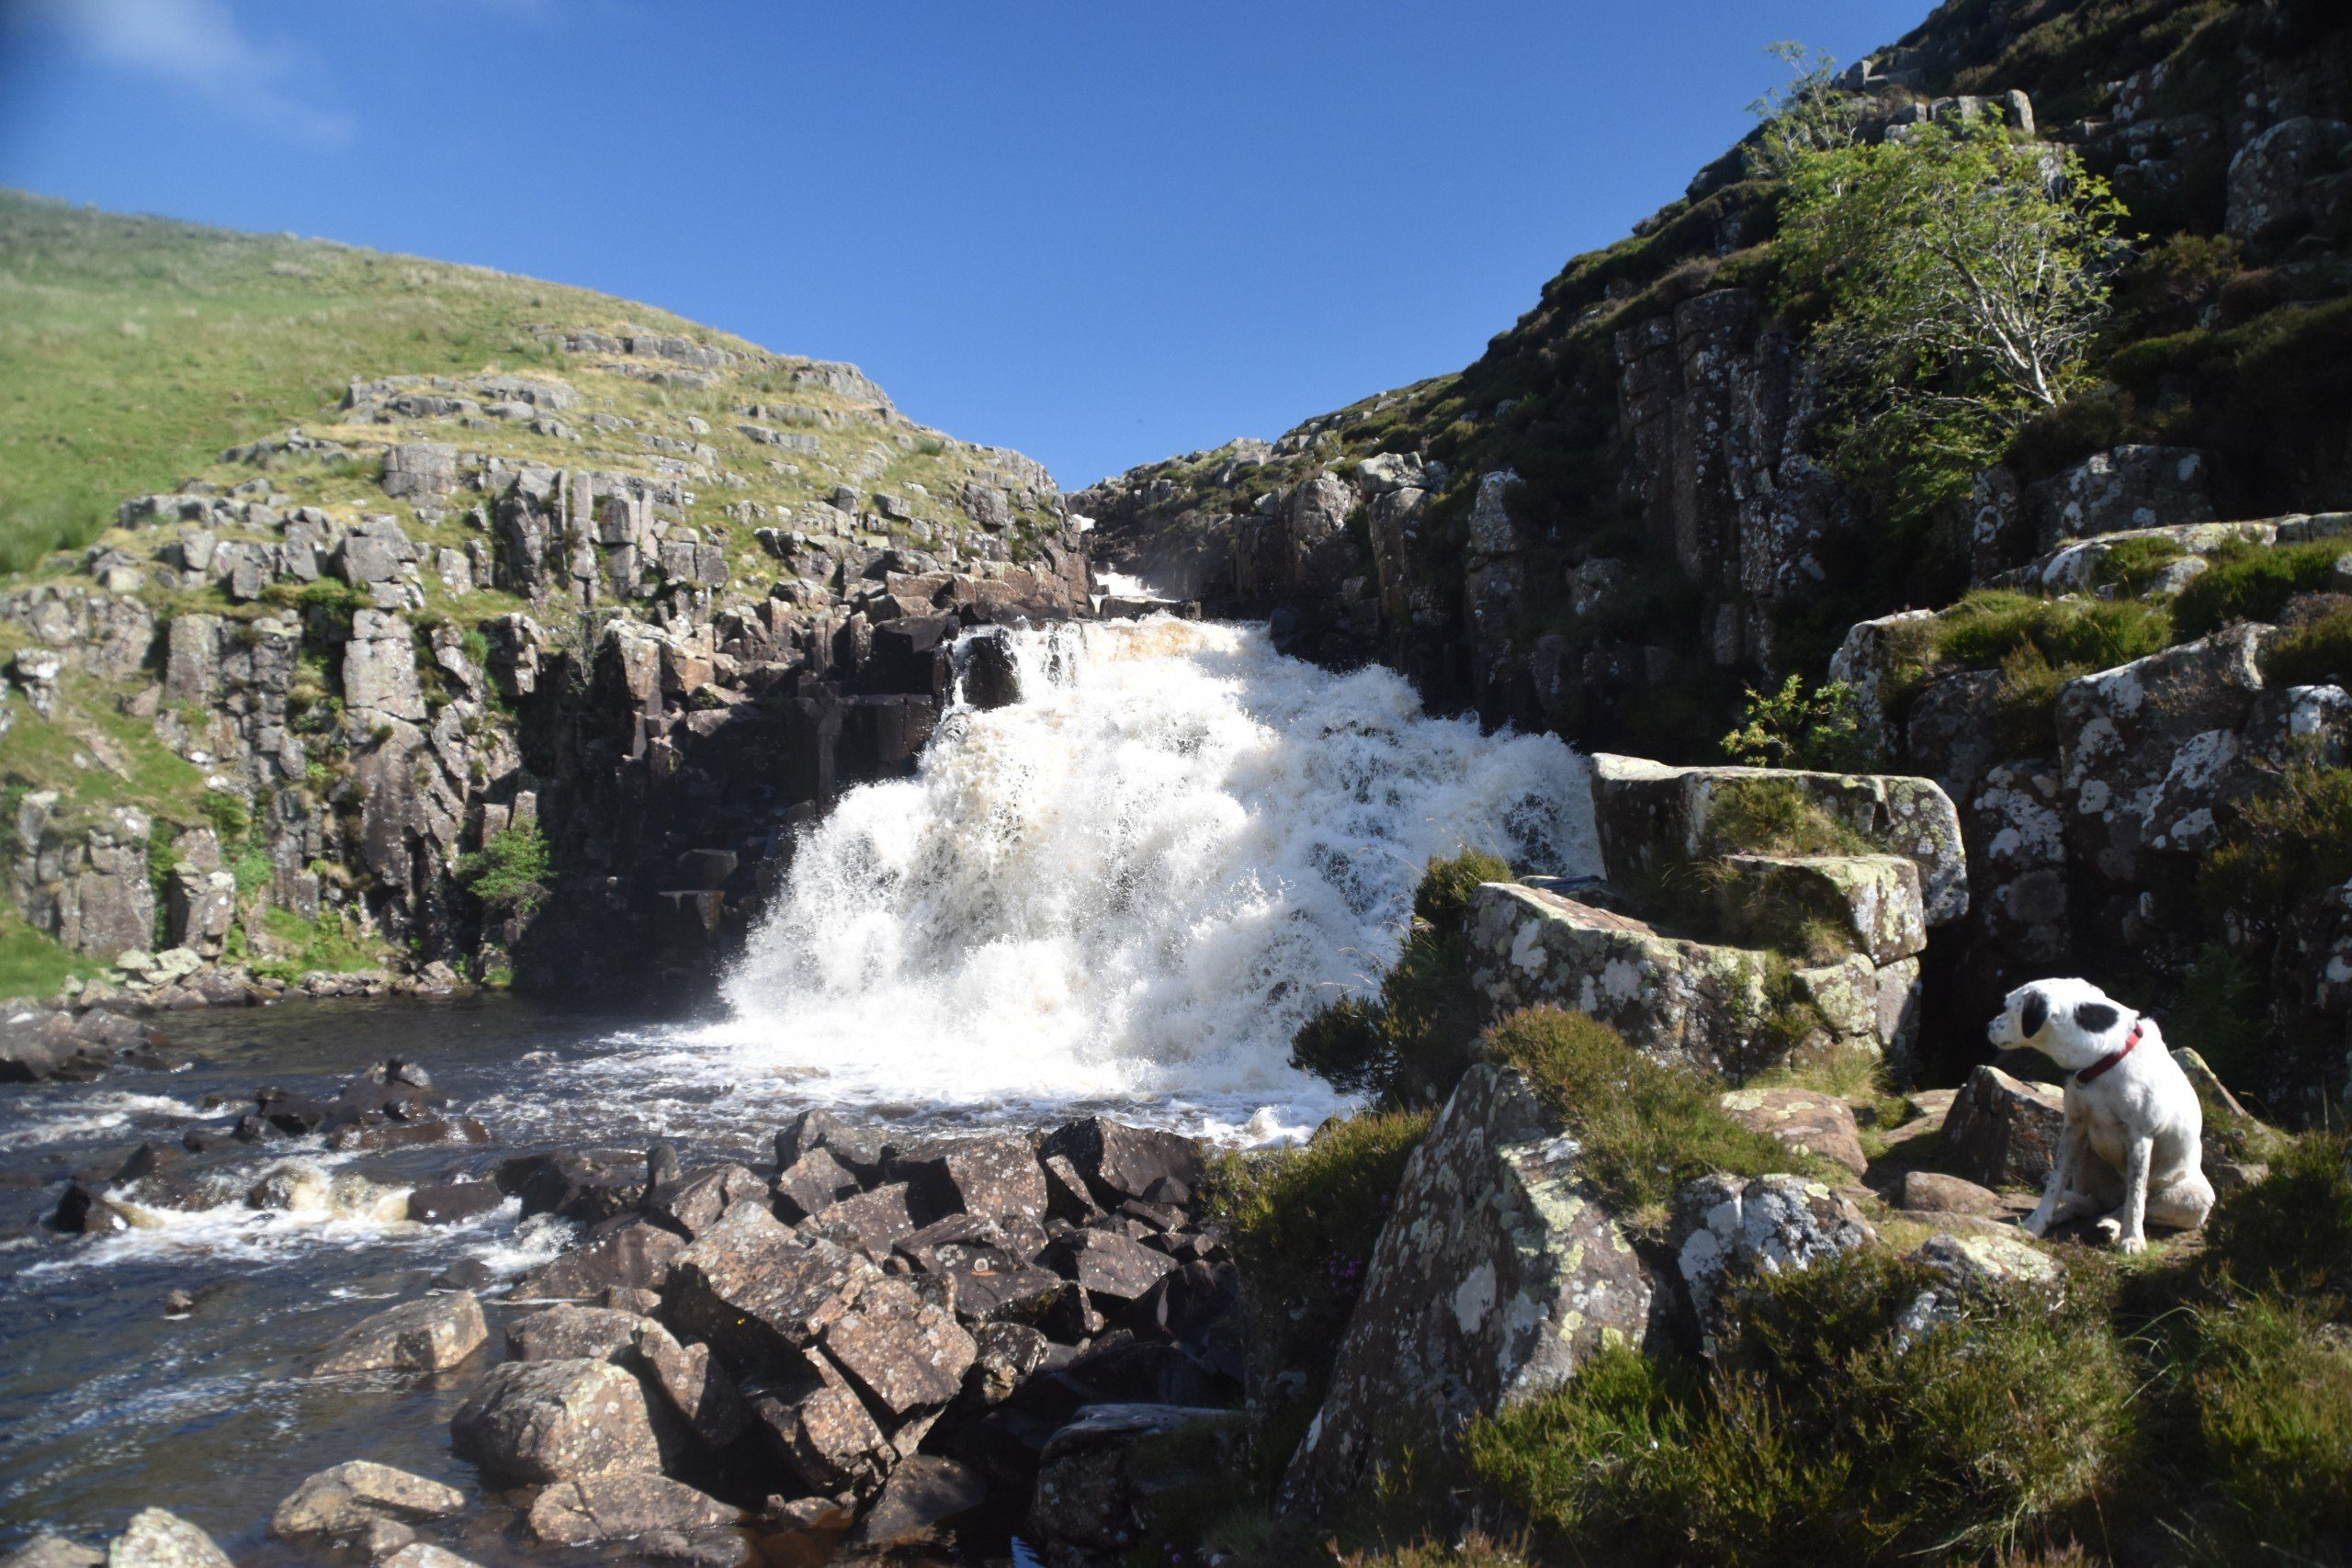 PENNINE WAY: Daisy with back to Cauldron Snout waterfall, on the way to Dufton